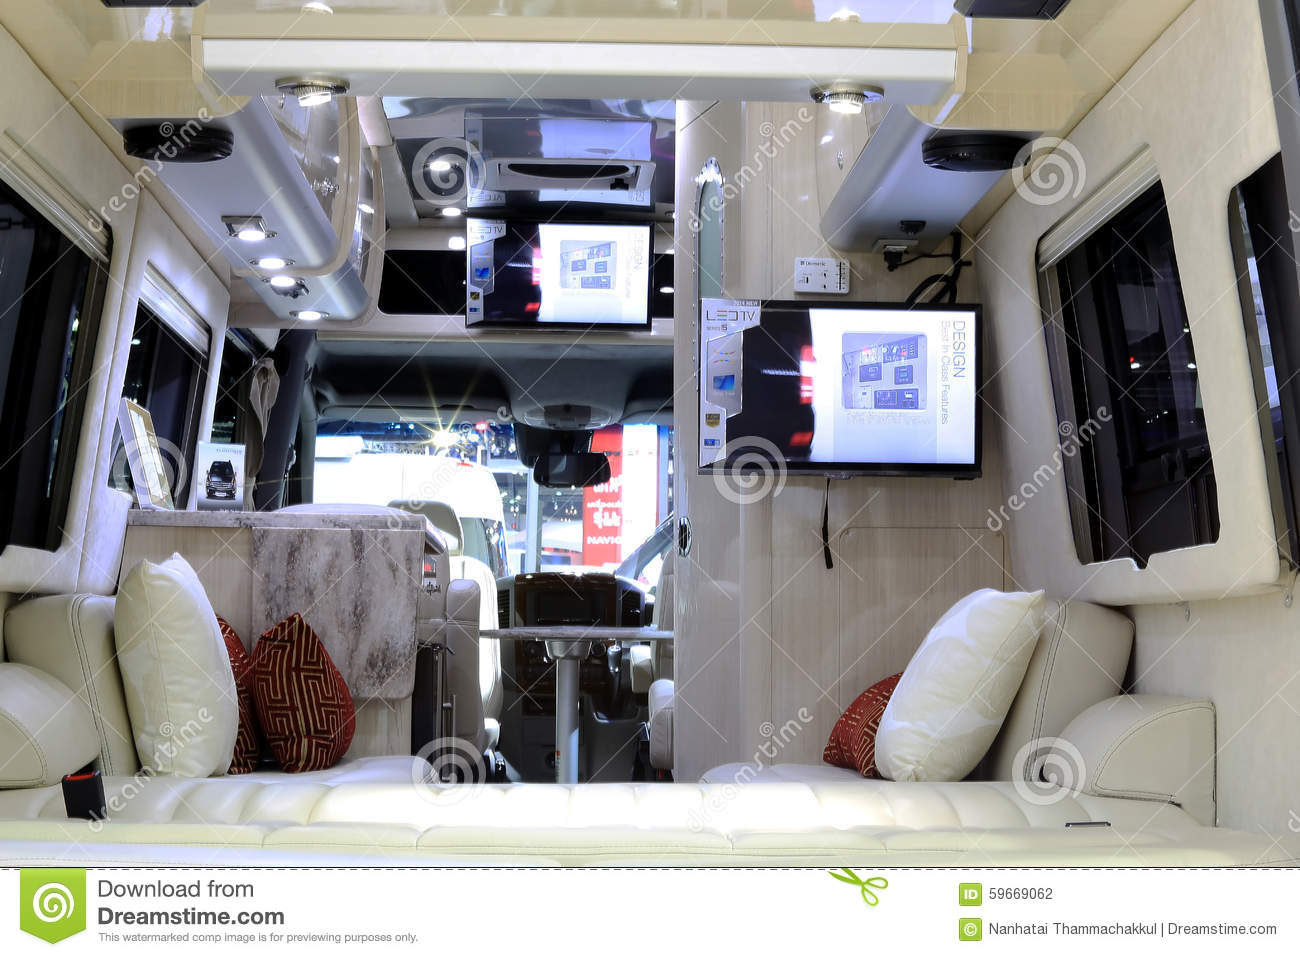 d coration int rieure de luxe dans la voiture de caravane r sidentielle de mercedes benz. Black Bedroom Furniture Sets. Home Design Ideas